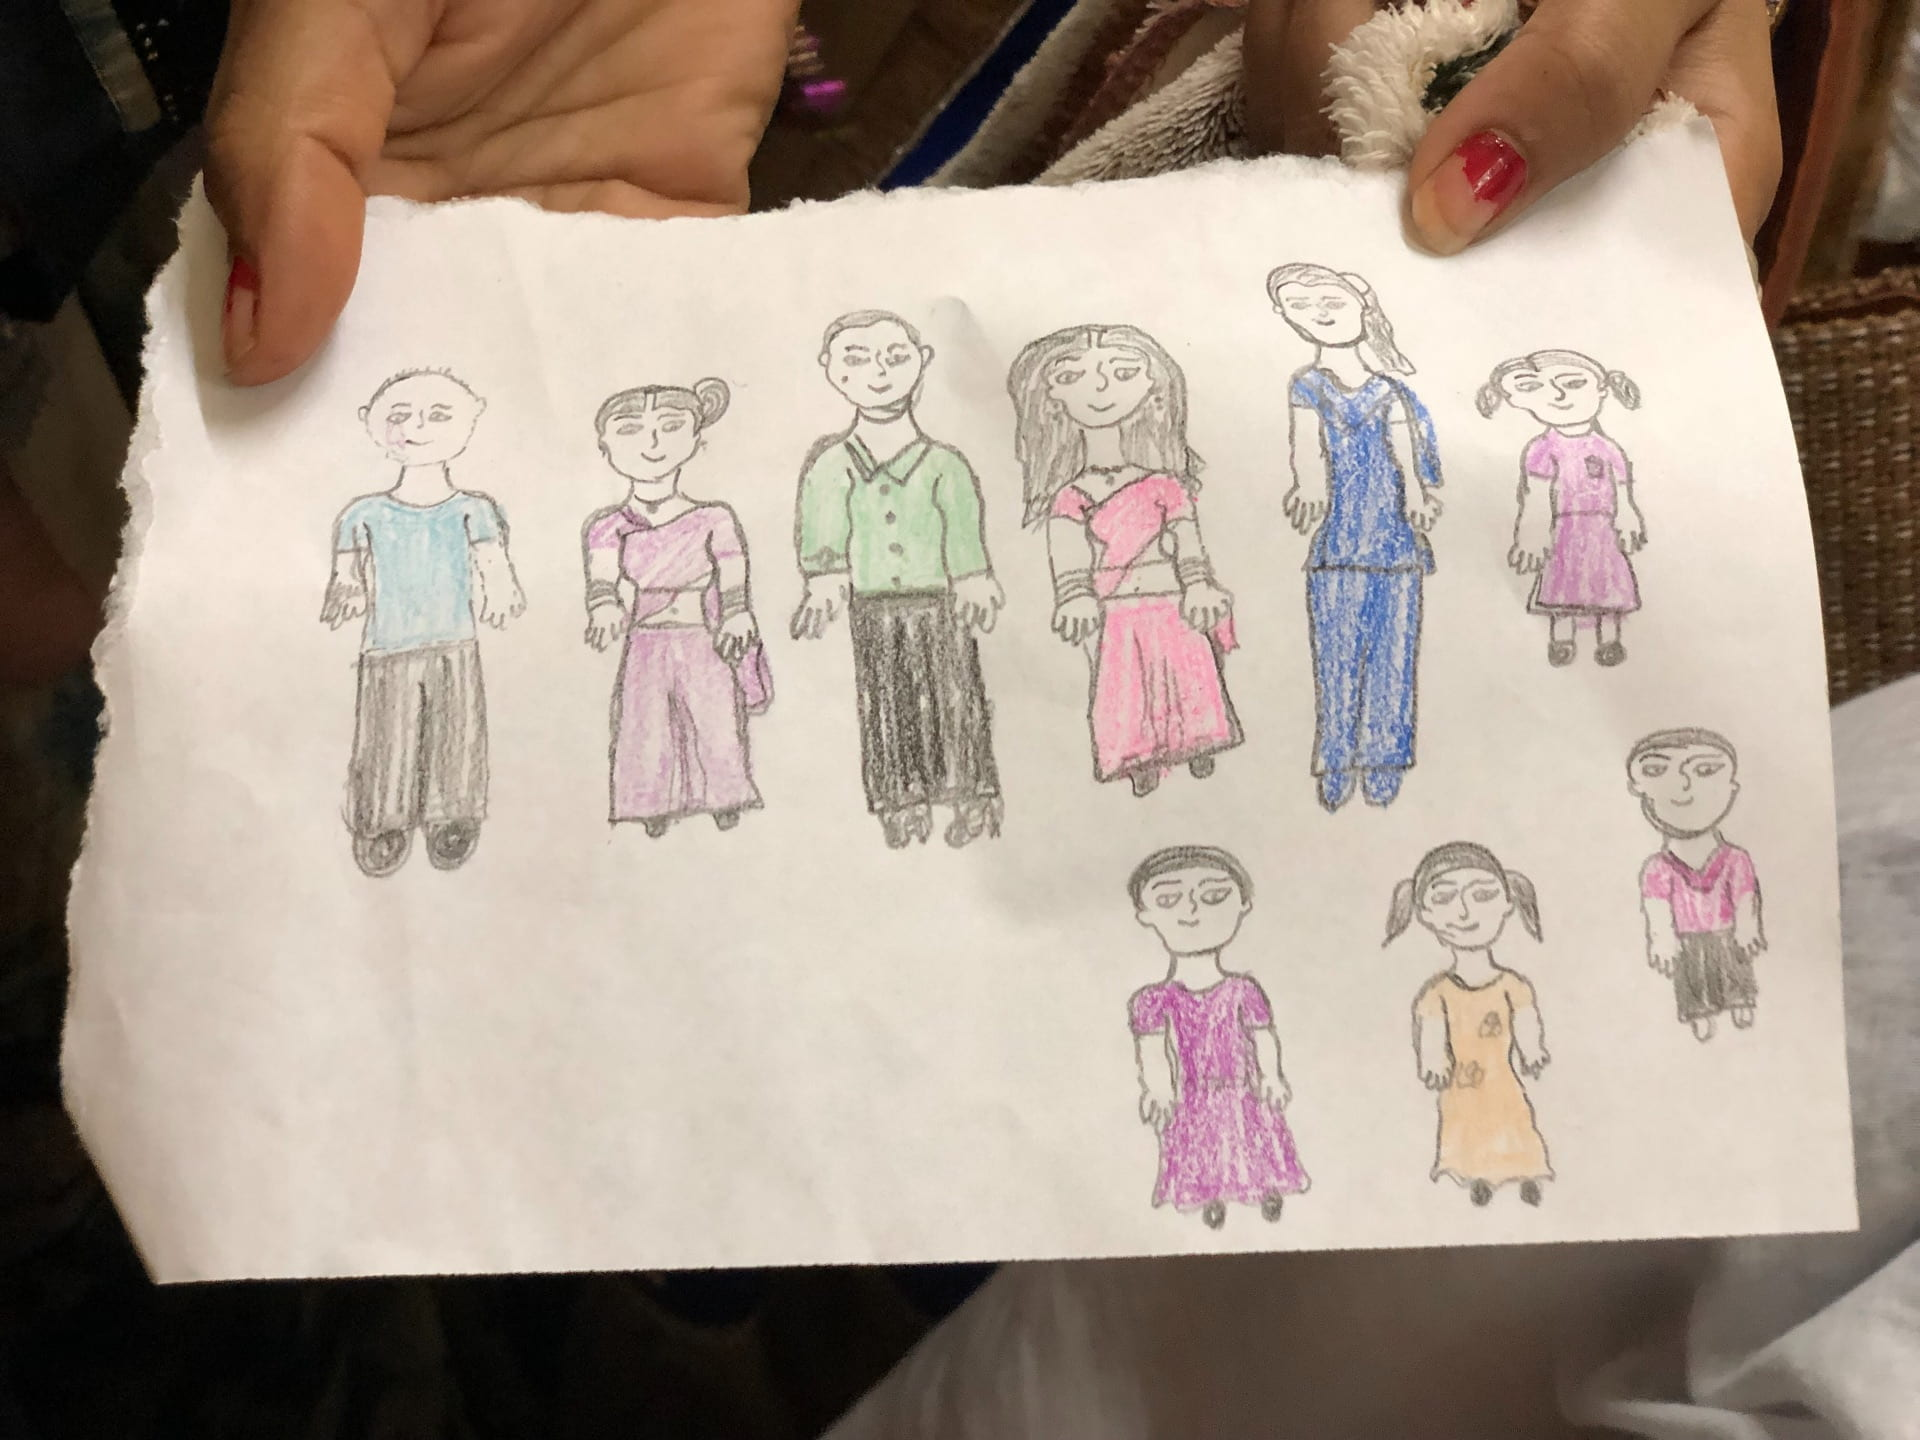 Drawing a family depicting a young girl in a purple dress, a woman in a blue sari and skirt, a, a woman in a pink sari and skirt, a man in a green shirt and black slacks, a woman in a light purple sari and skirt, a man in a blue shirt and black slacks, a young boy in a purple shirt and black pants, a young girl in a yellow dress, and a young girl in a dark purple dress